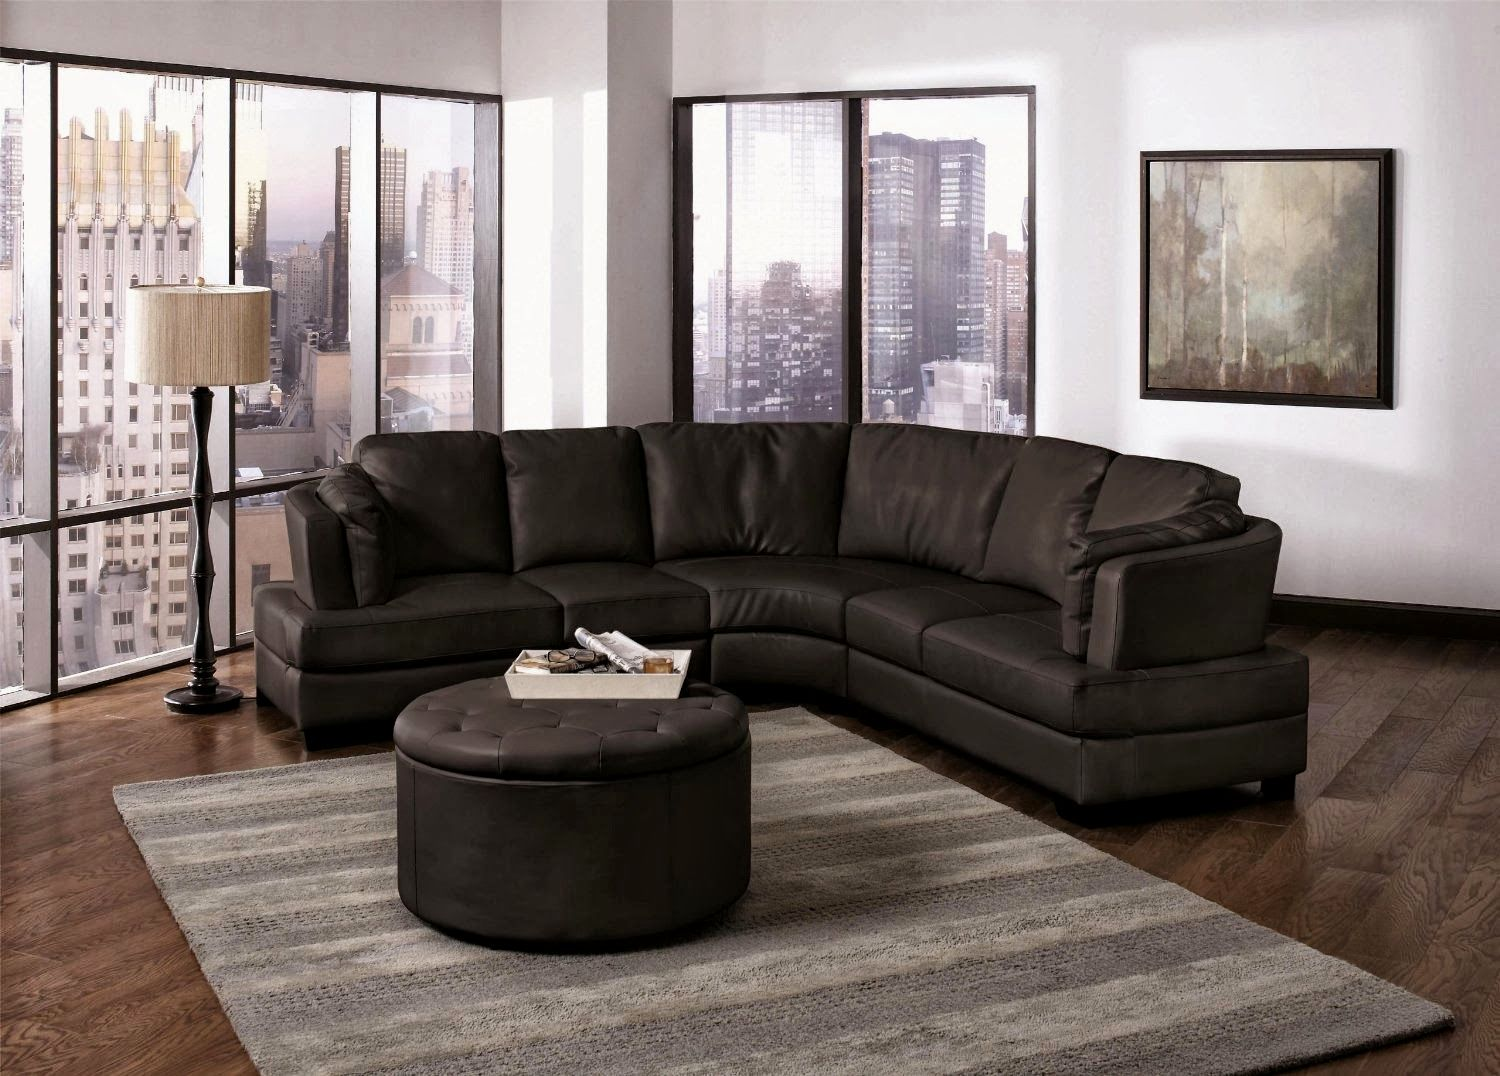 stylish reclining sectional sofa photo-Terrific Reclining Sectional sofa Picture